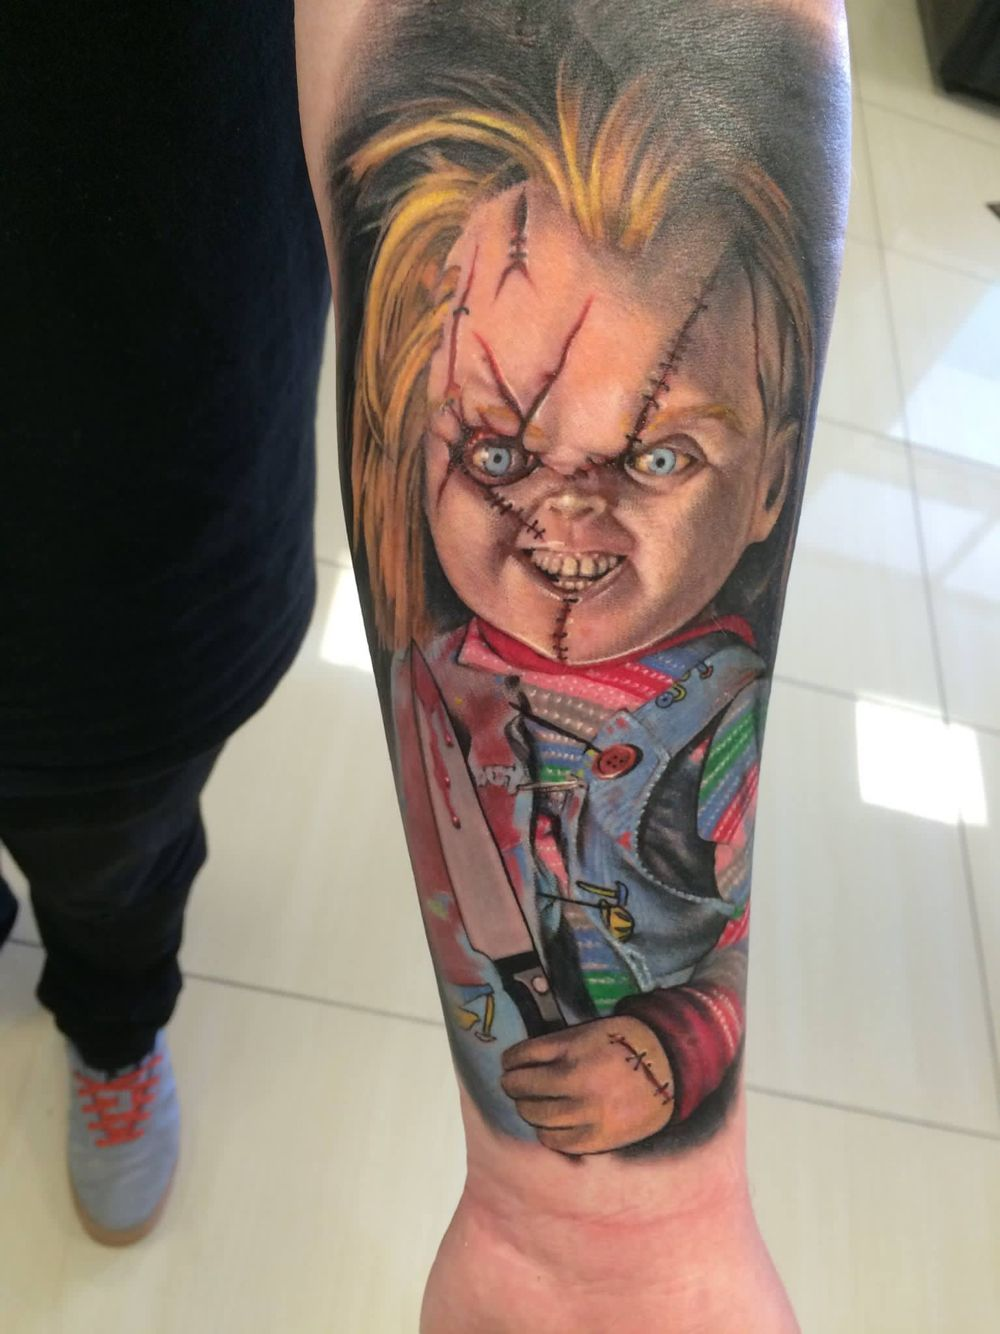 Horror clown tattoo bedeutung images for tatouage - Leuchtturm tattoo bedeutung ...